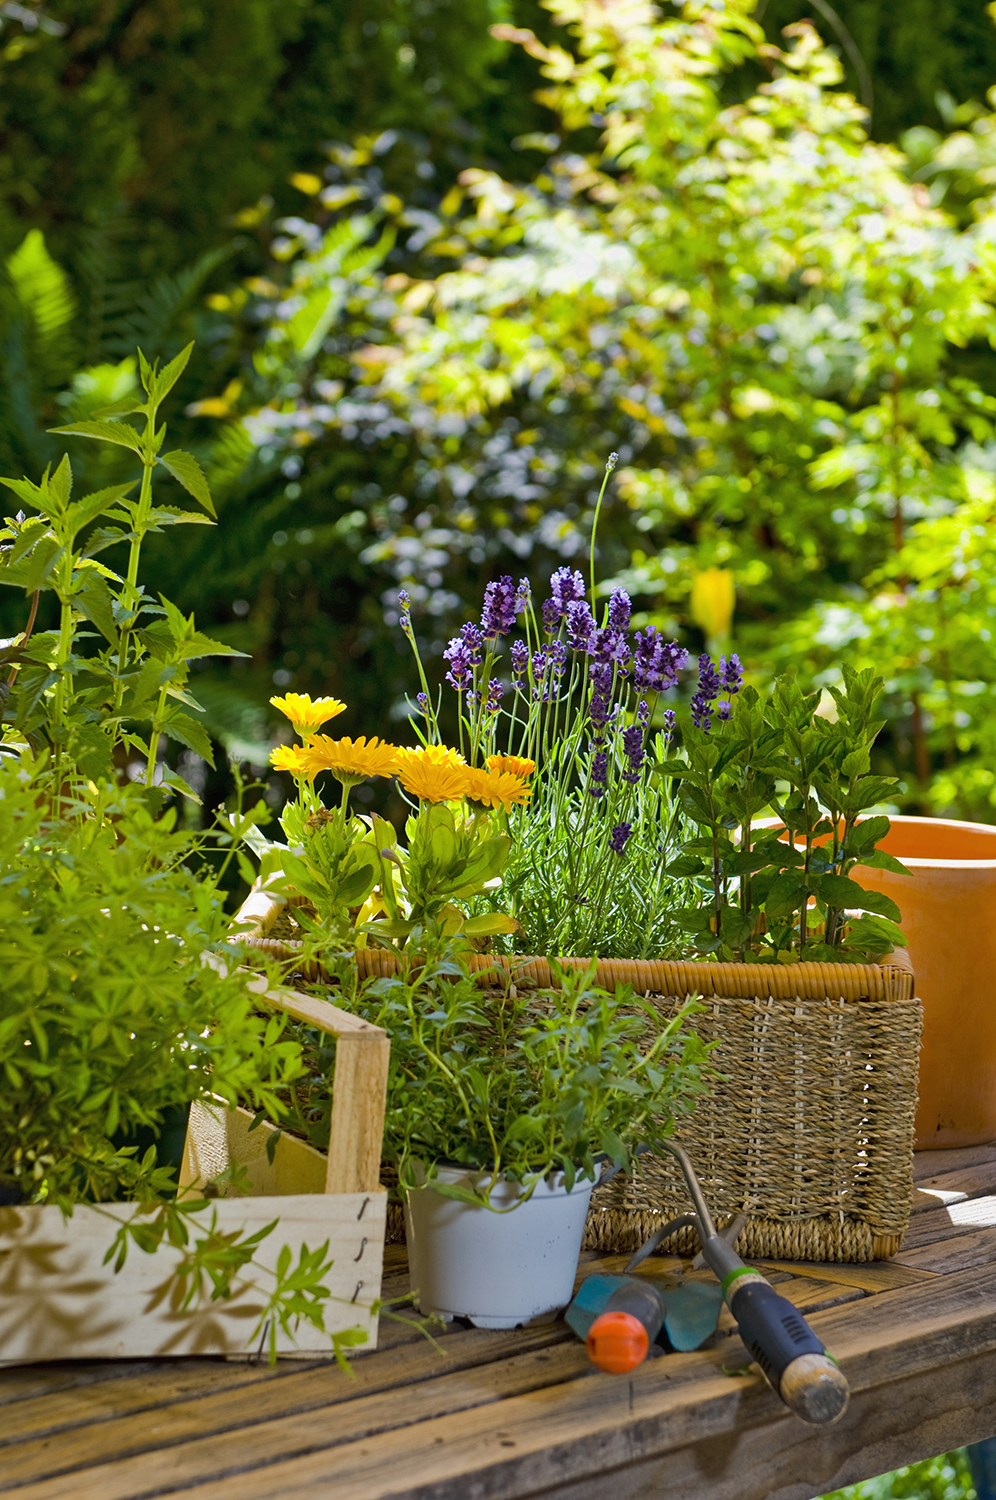 9 Gardening Tips for Beginners